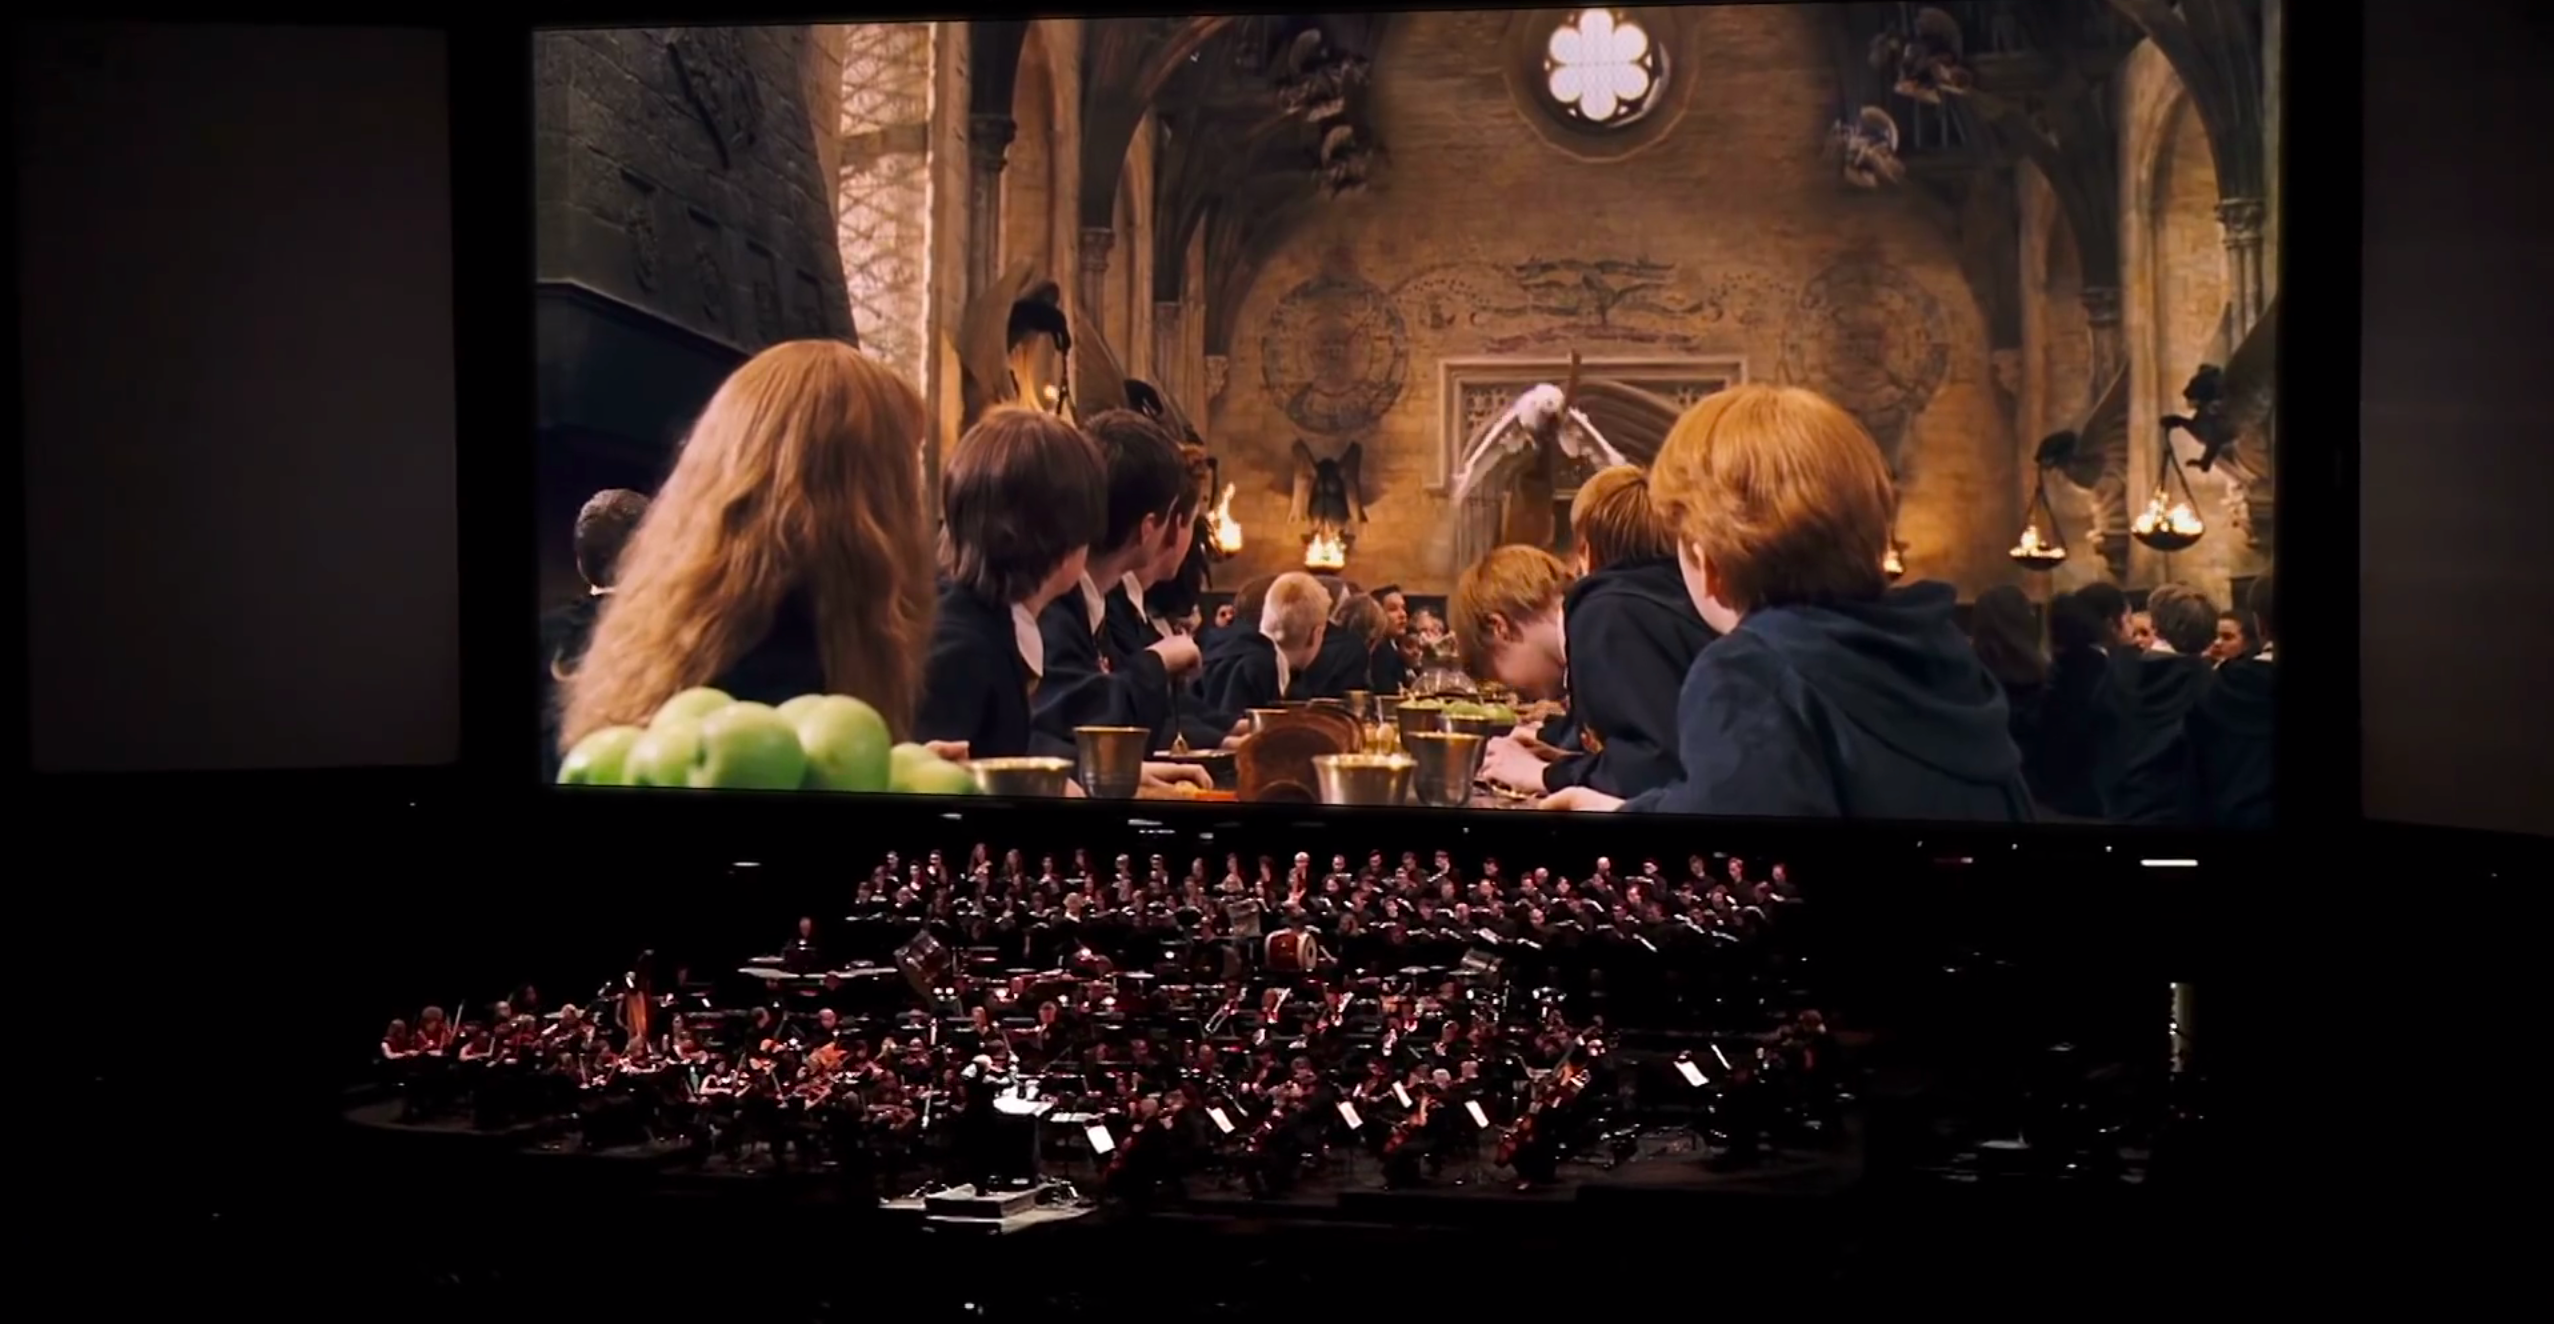 Capture d'écran YouTube de la vidéo promotionnelle | Cinéconcert Harry Potter and the Philosopher's Stone